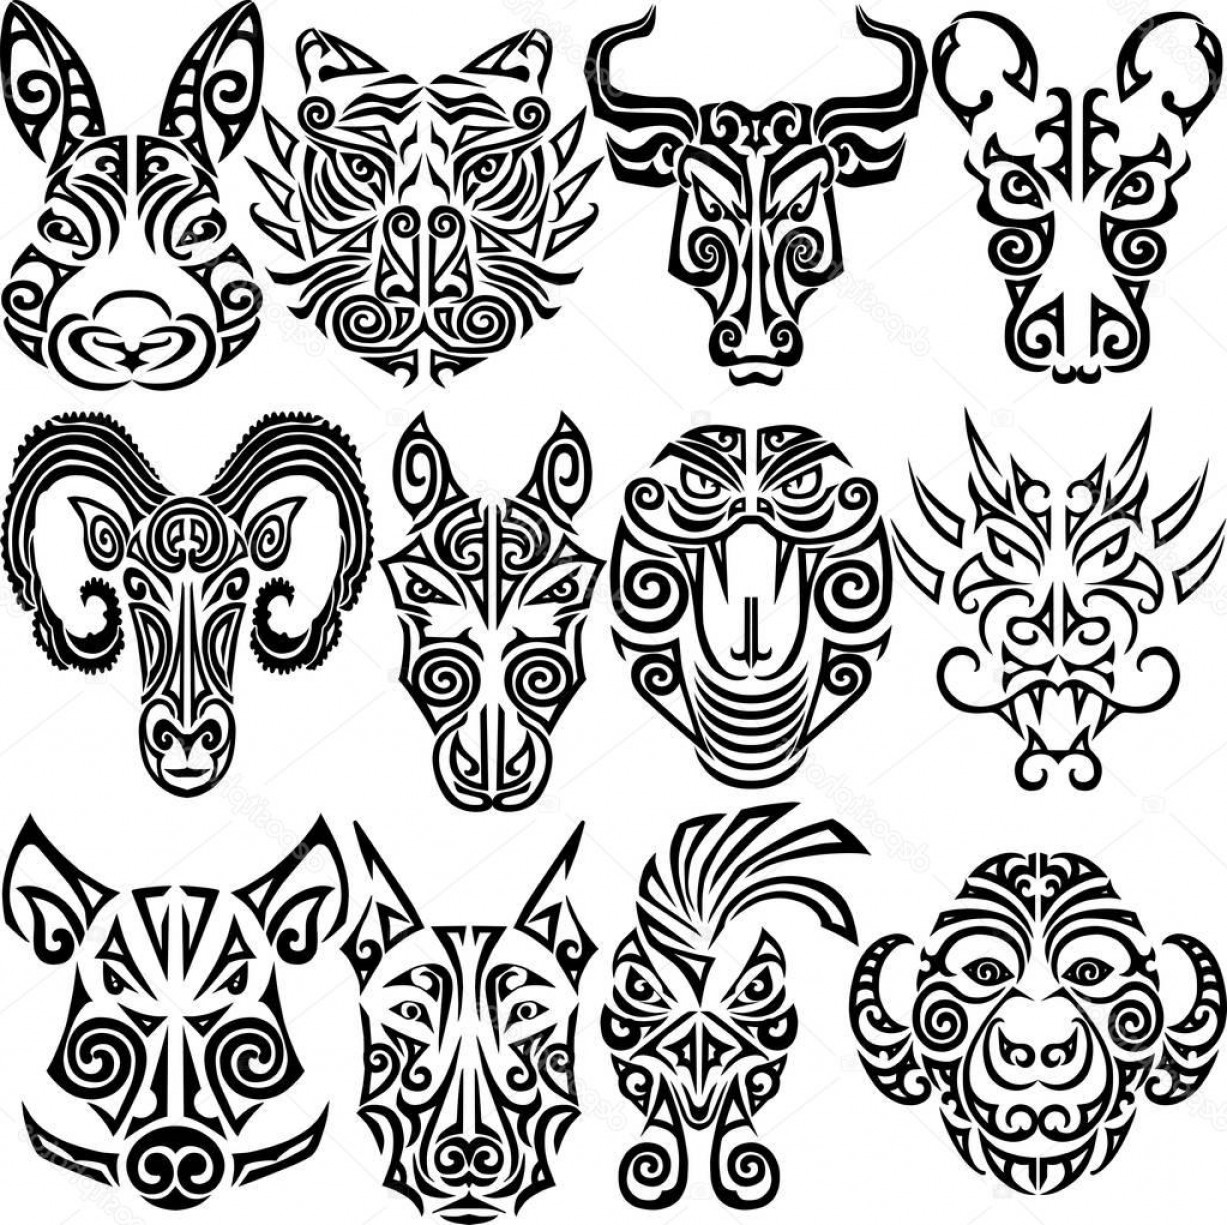 Chinese Zodiac Signs Vector: Stock Illustration Chinese Zodiac Signs Set